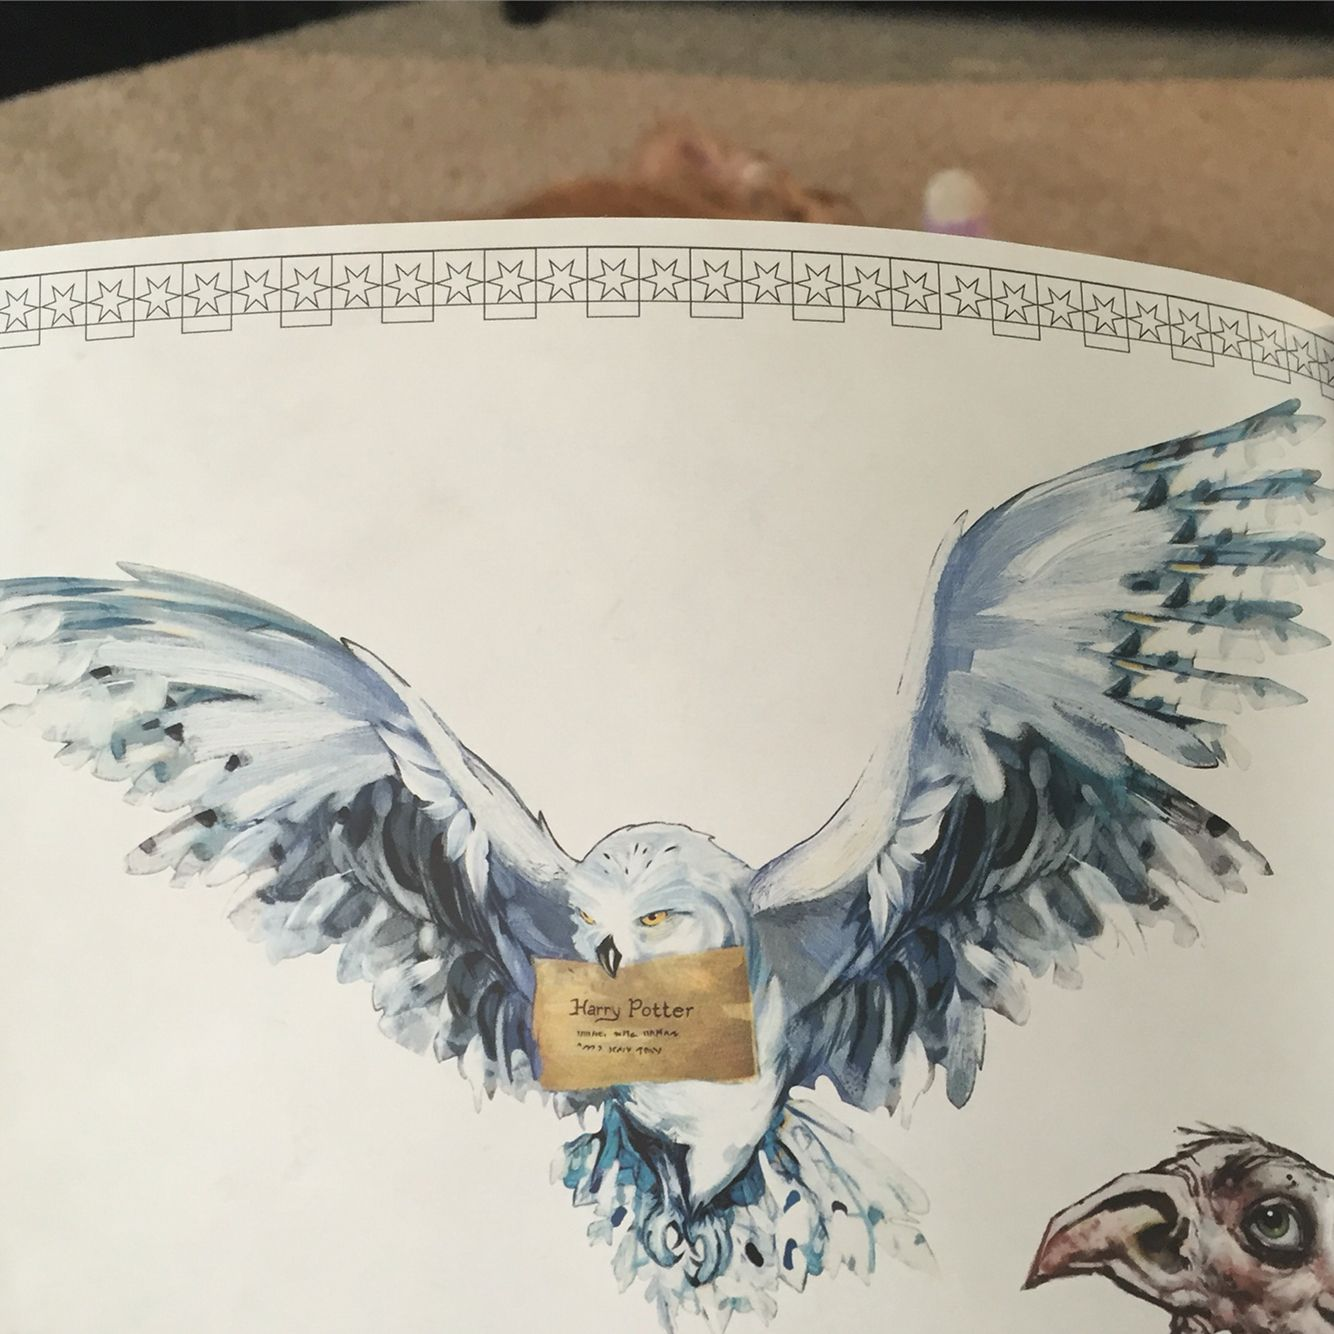 Harry Potter Hedwig Tattoo I Plan On Getting Going To Add Some Meaning To It As Always Hedwig Tattoo Harry Potter Hedwig Harry Potter Owl